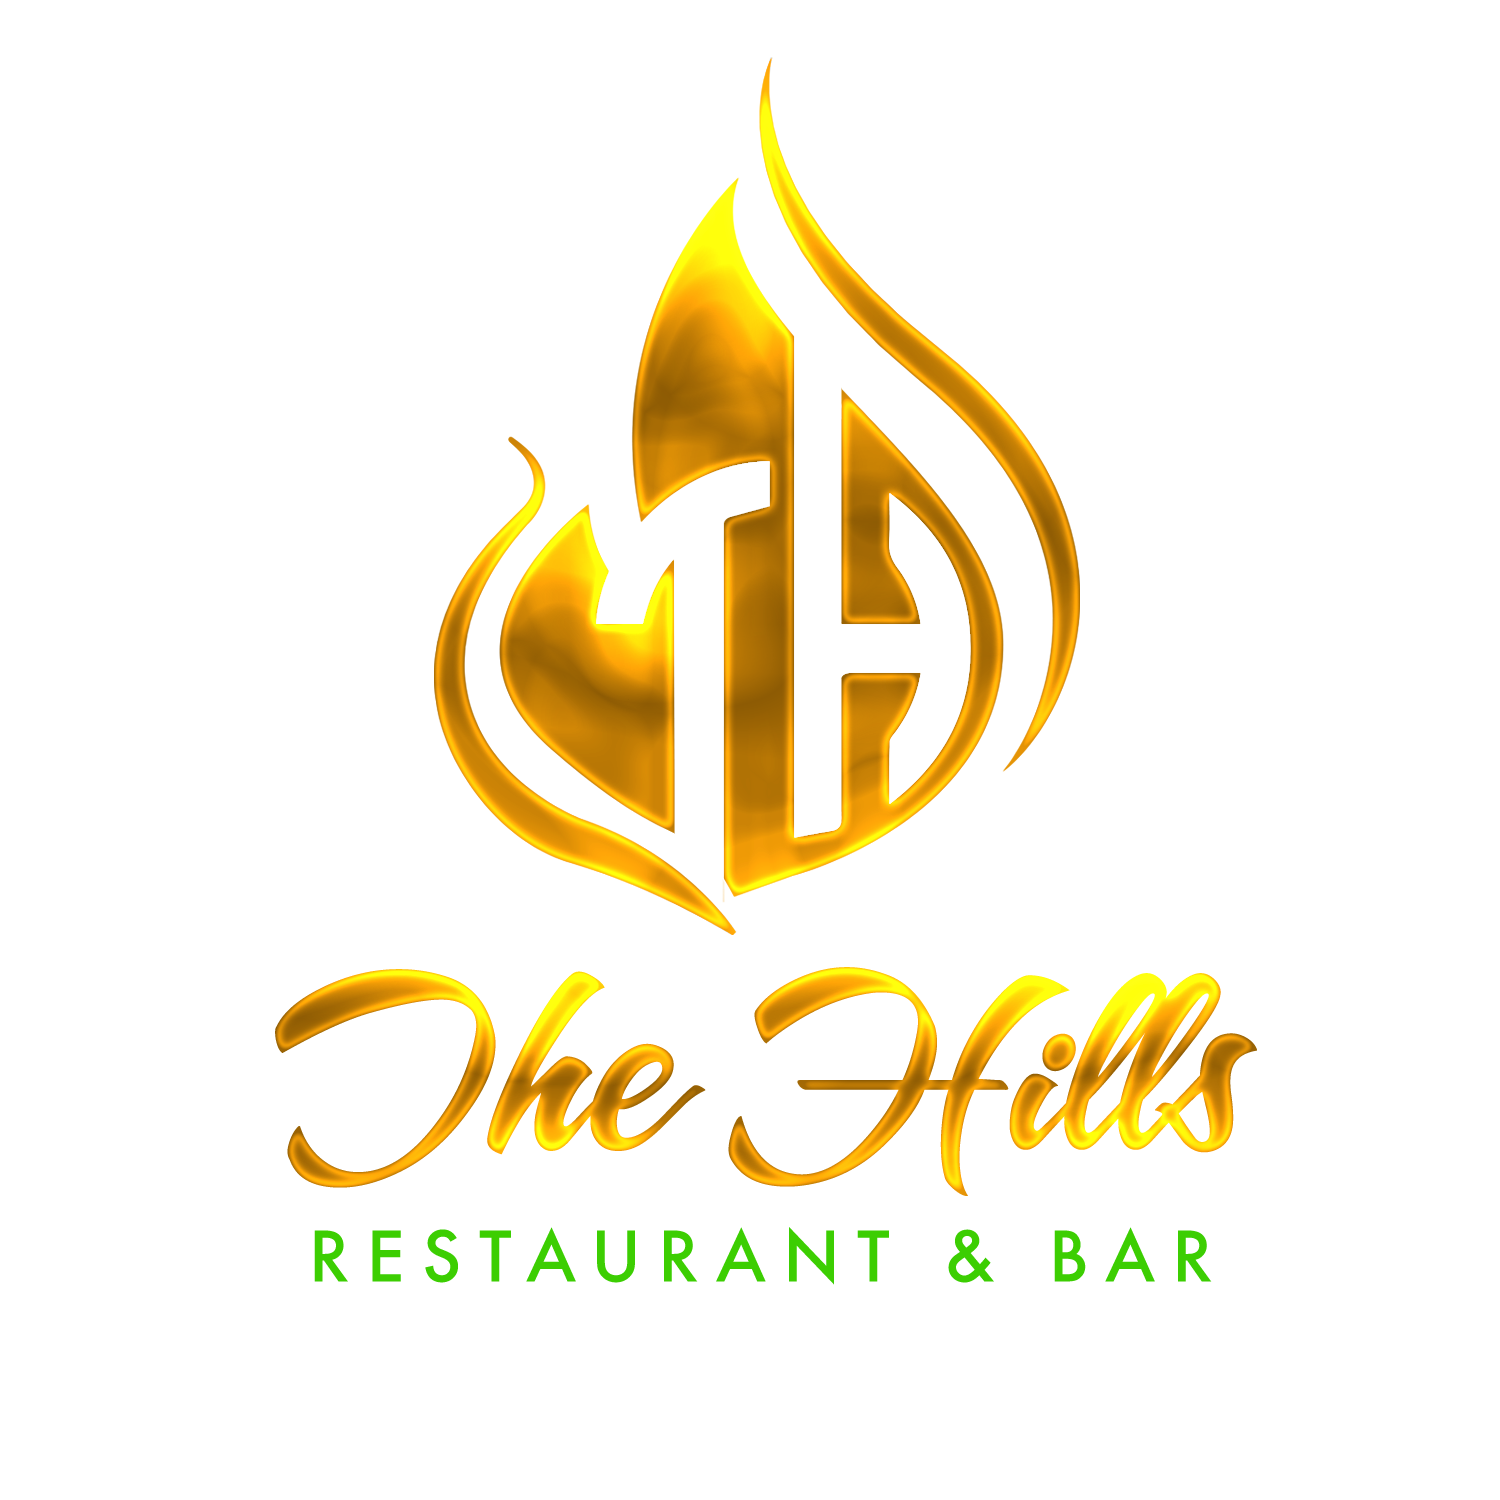 The Hills Restaurant & Bar